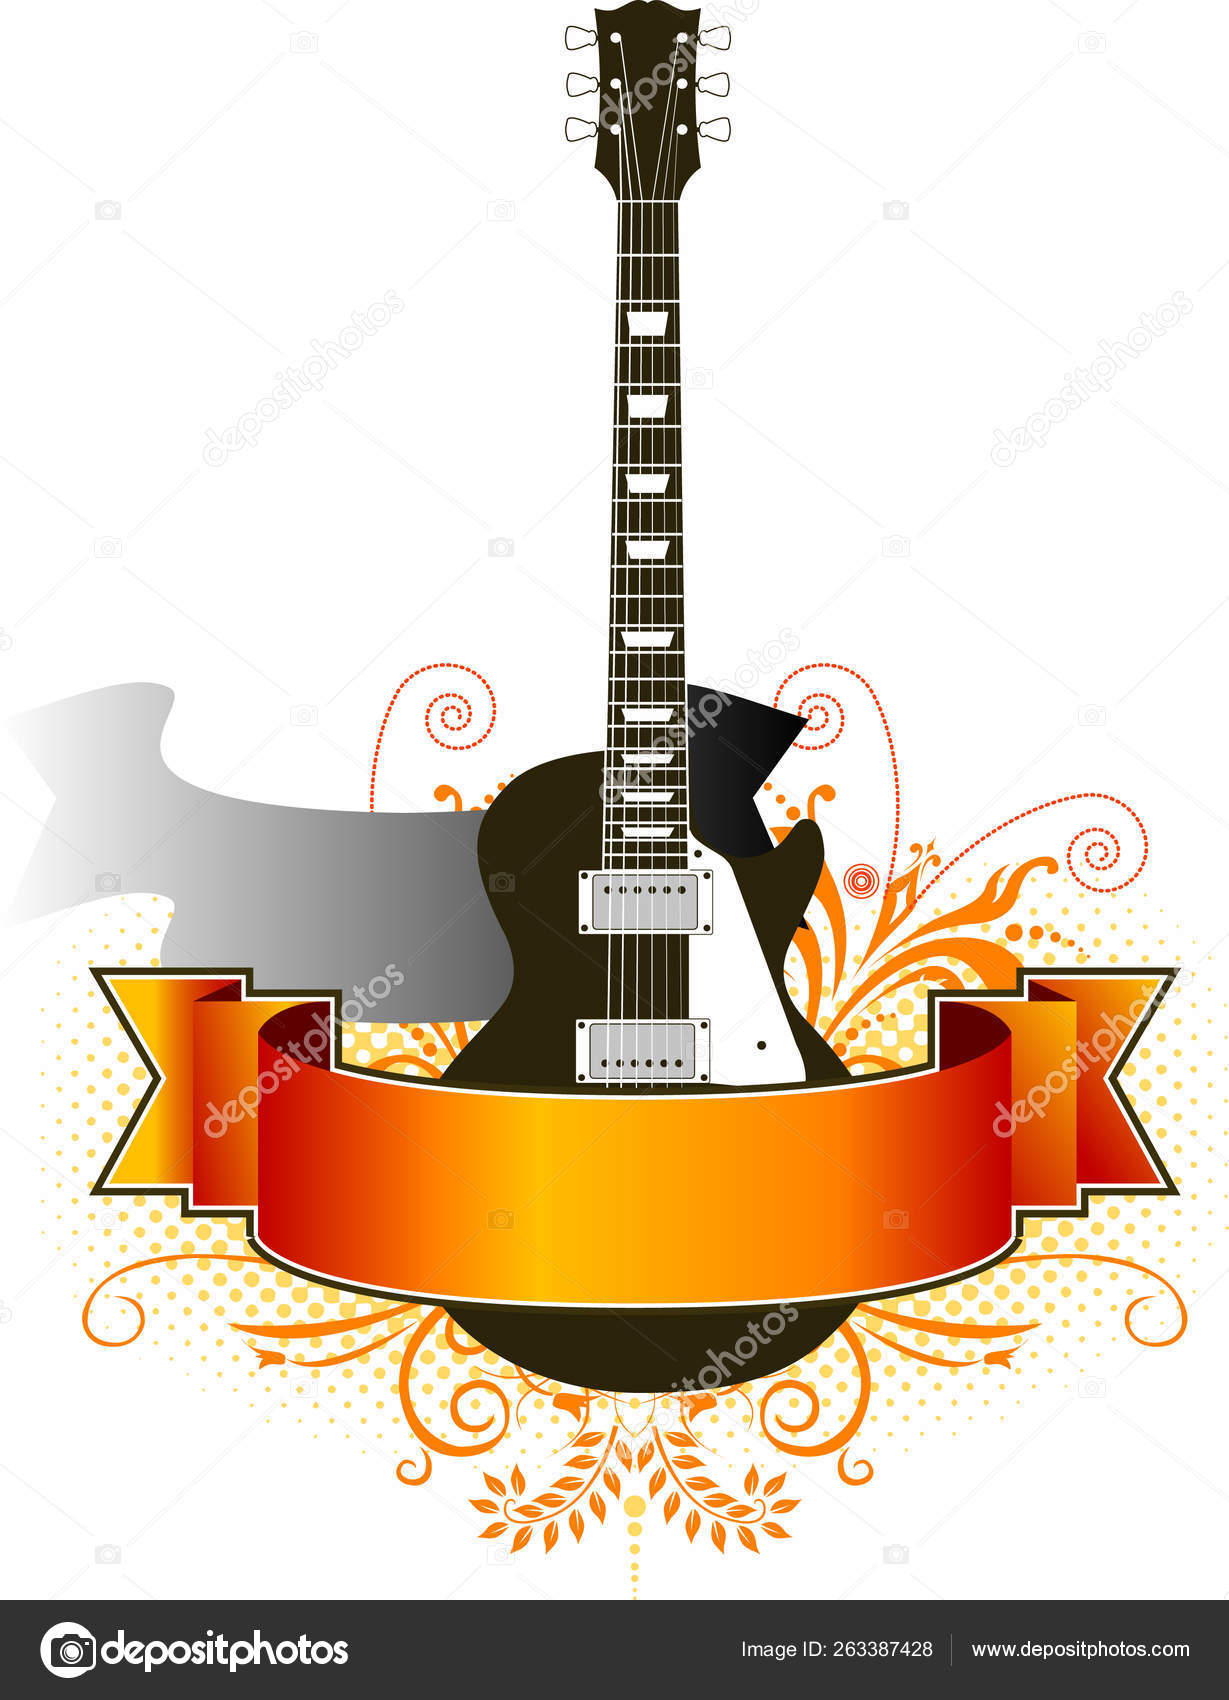 Guitar Vector Banner Design Template Stock Photo C Yayimages 263387428